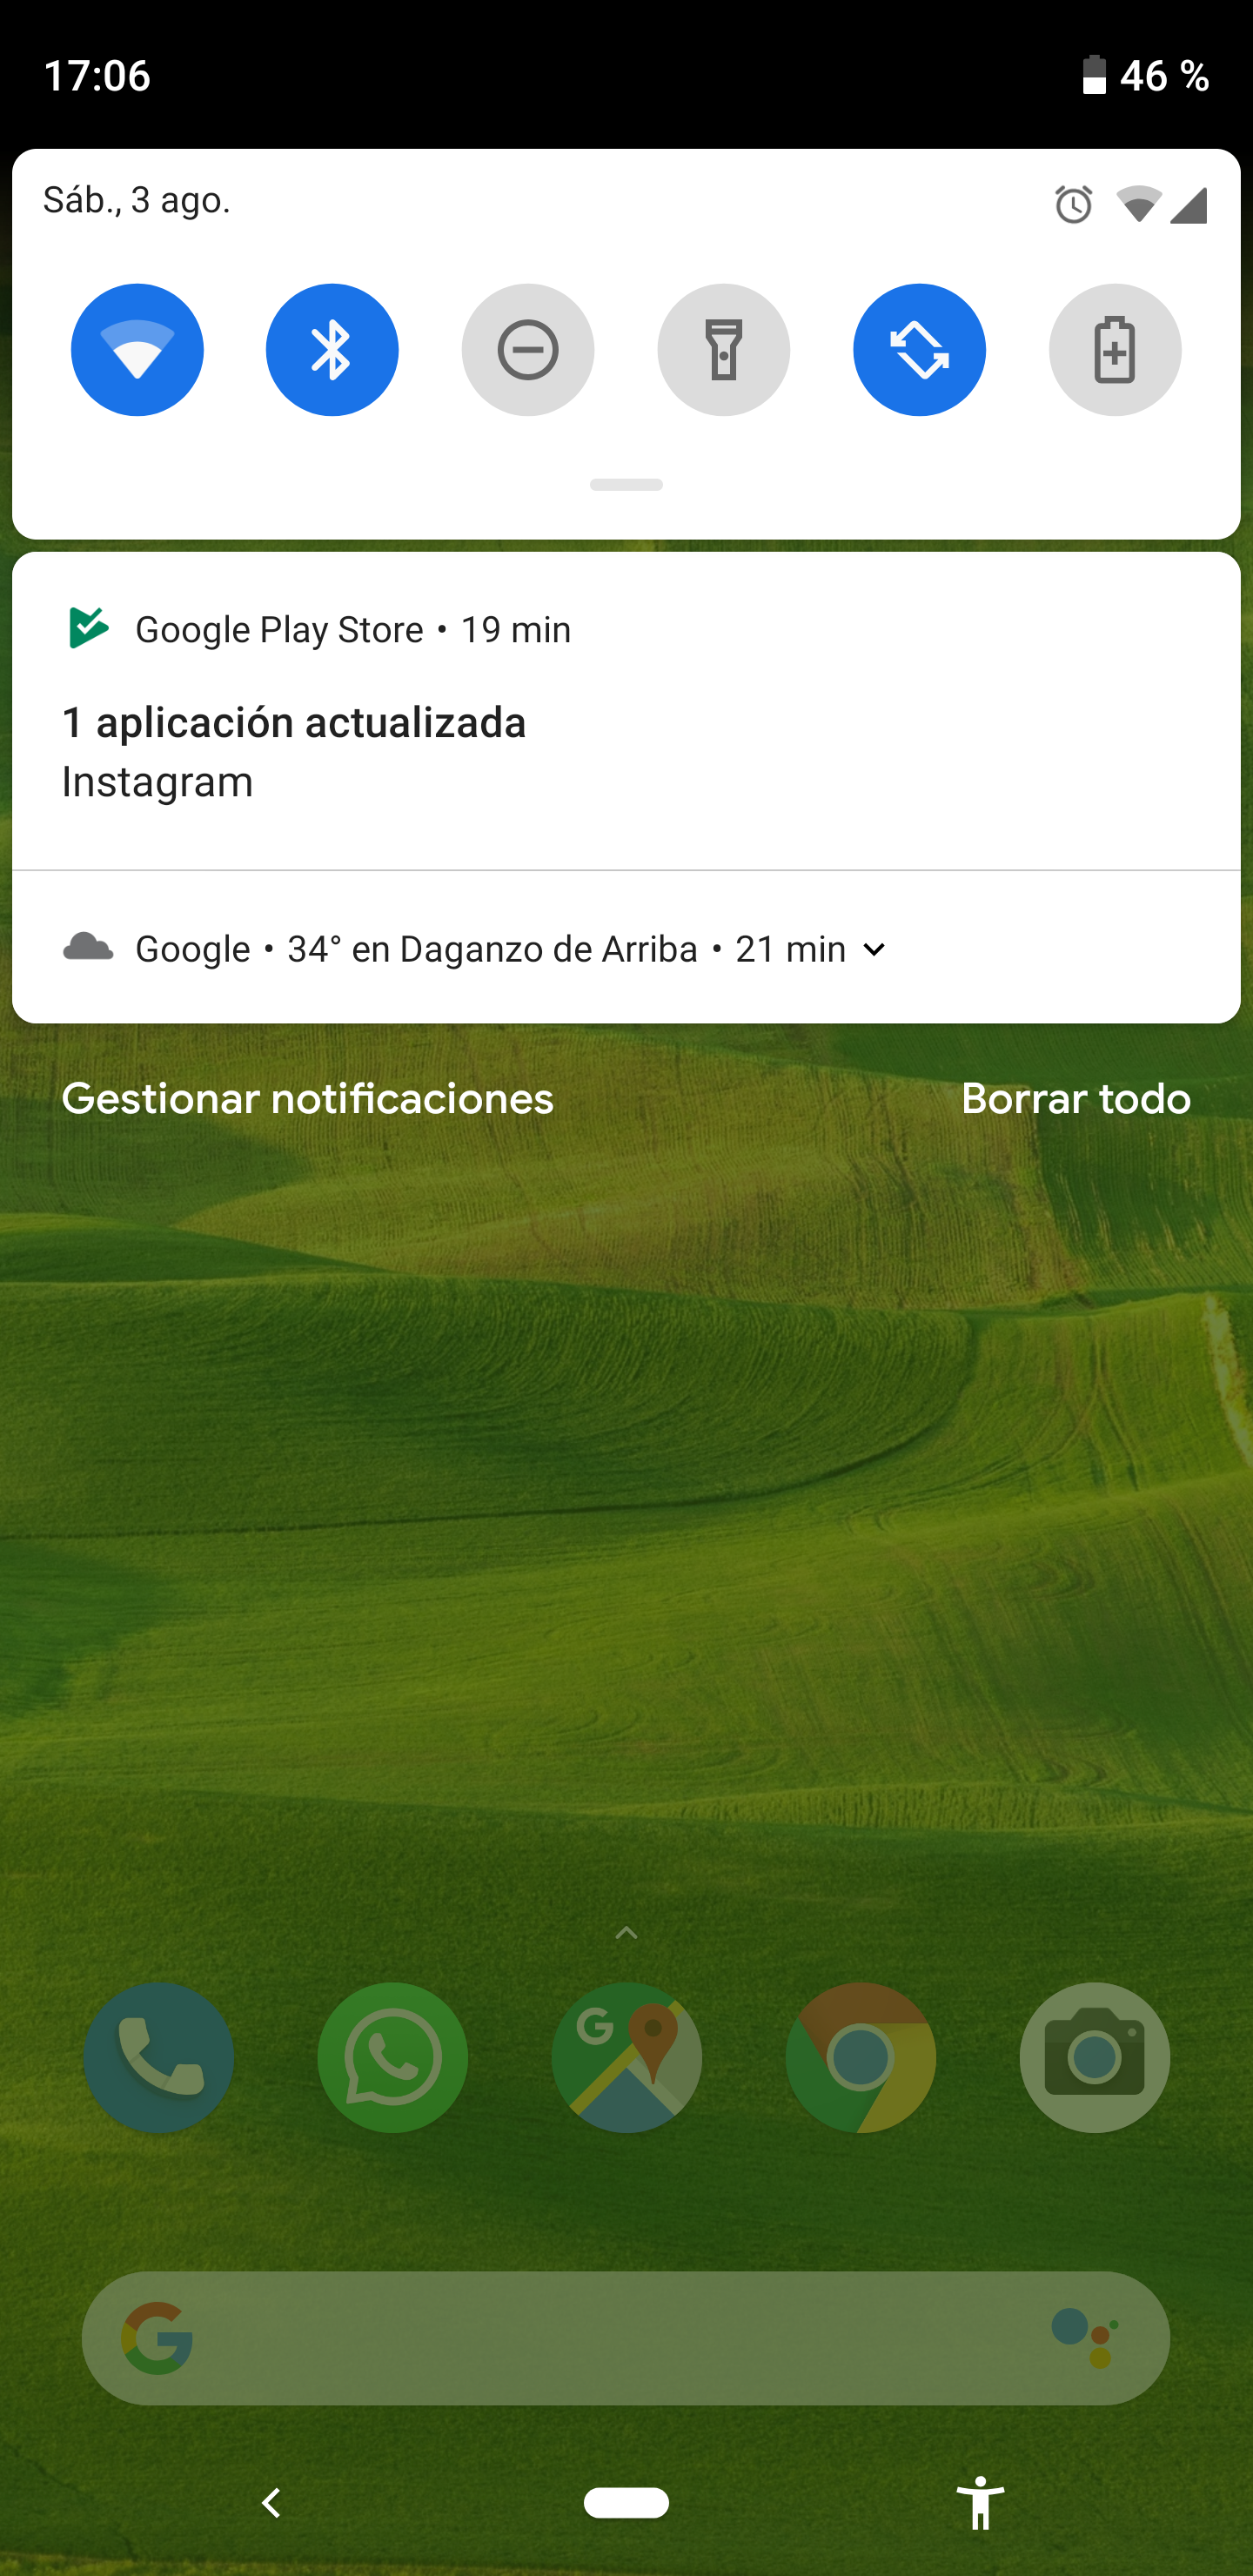 Android phone notification